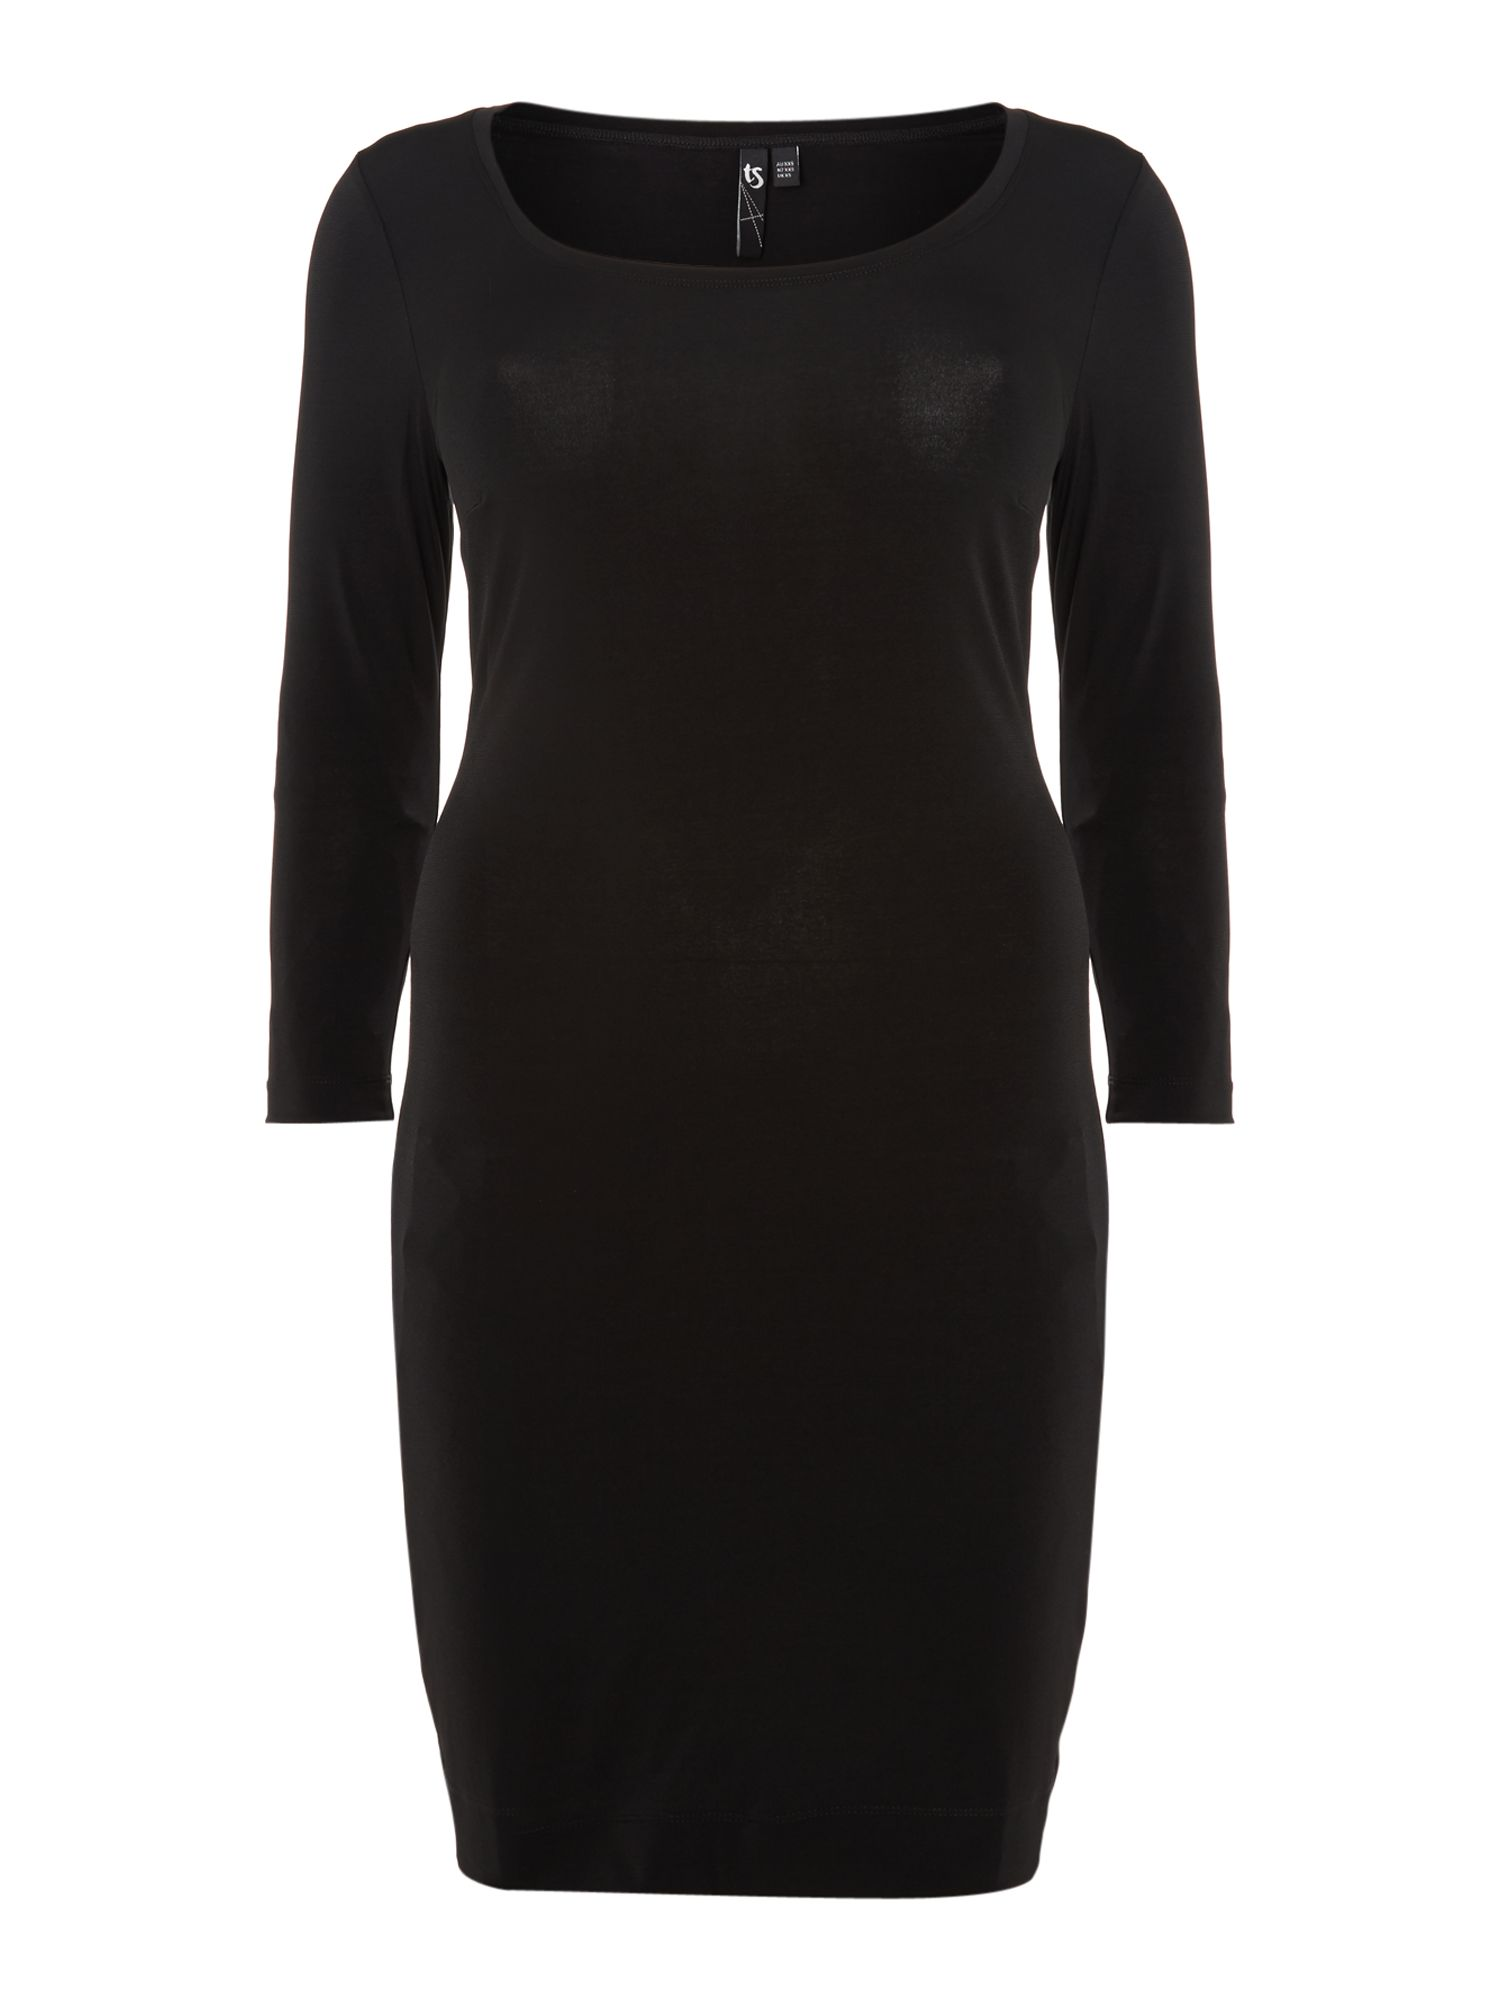 Luna long sleeve body dress